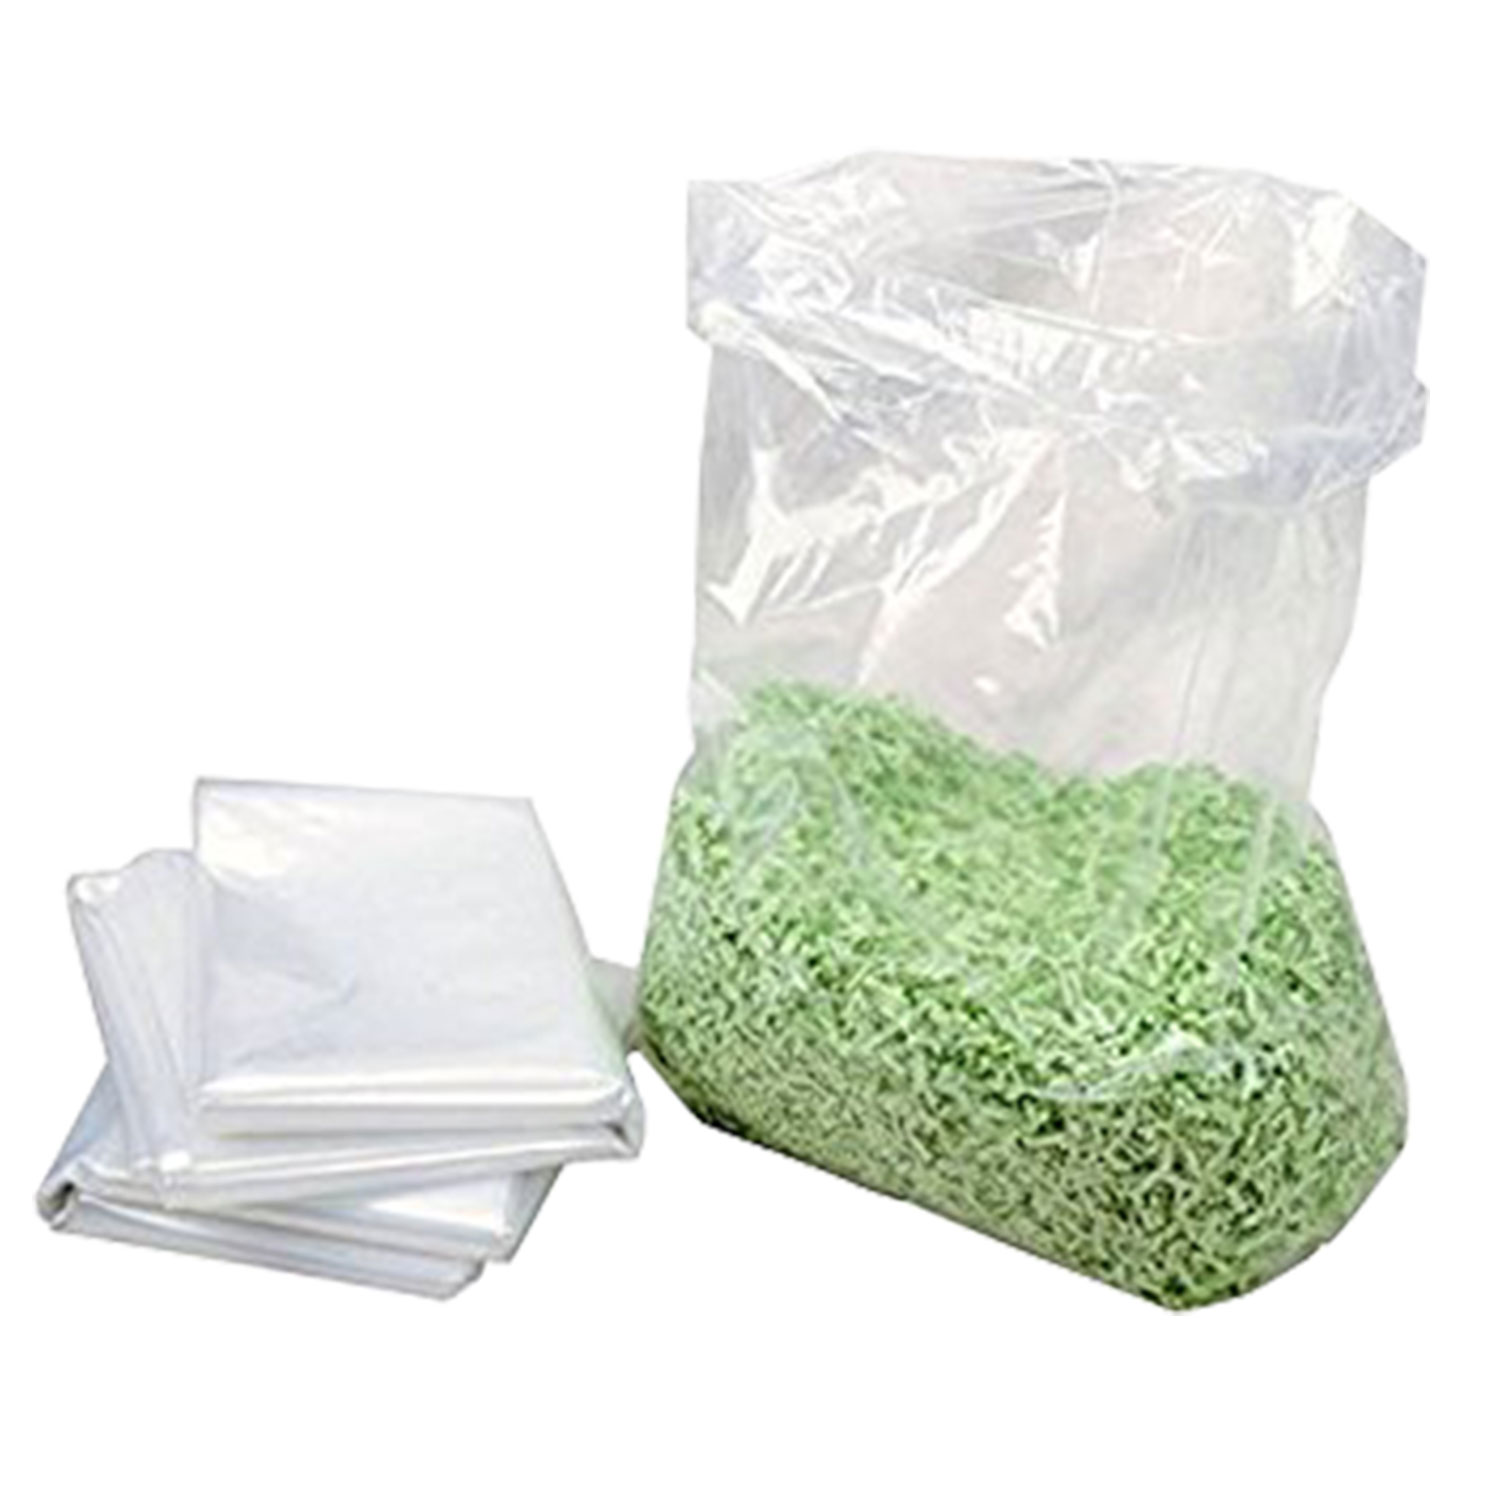 IDEAL Shredder Bags For IDEAL 22xx, 2350, 24xx